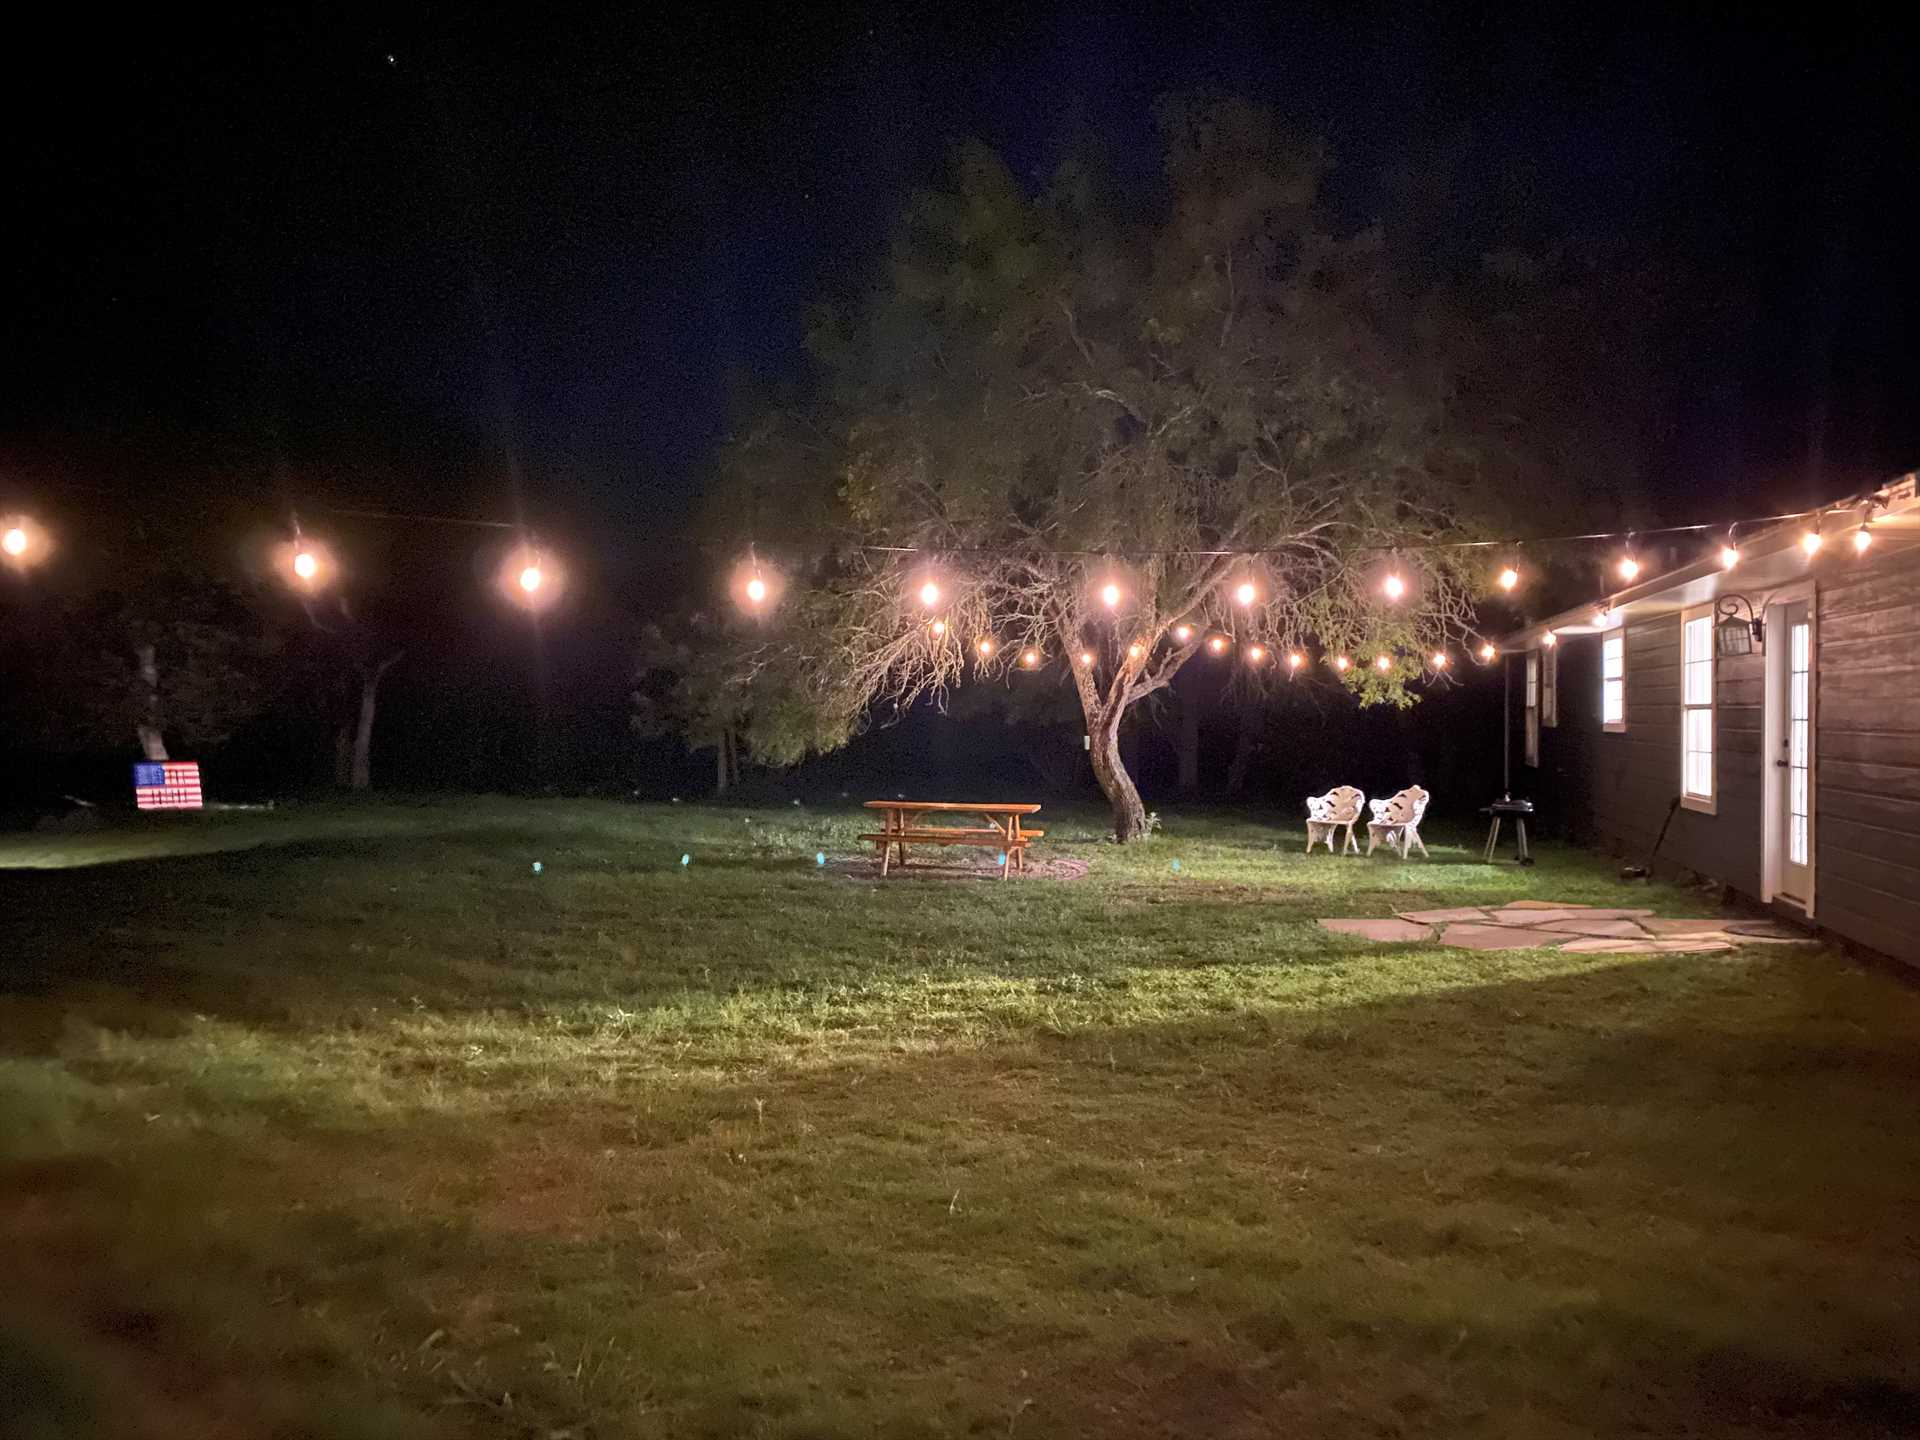 Just because night has fallen doesn't mean the outdoor fun has to end! Enjoy cool country evenings under the magical glow of outdoor lighting, or gather around the crackling glow of the fire pit!